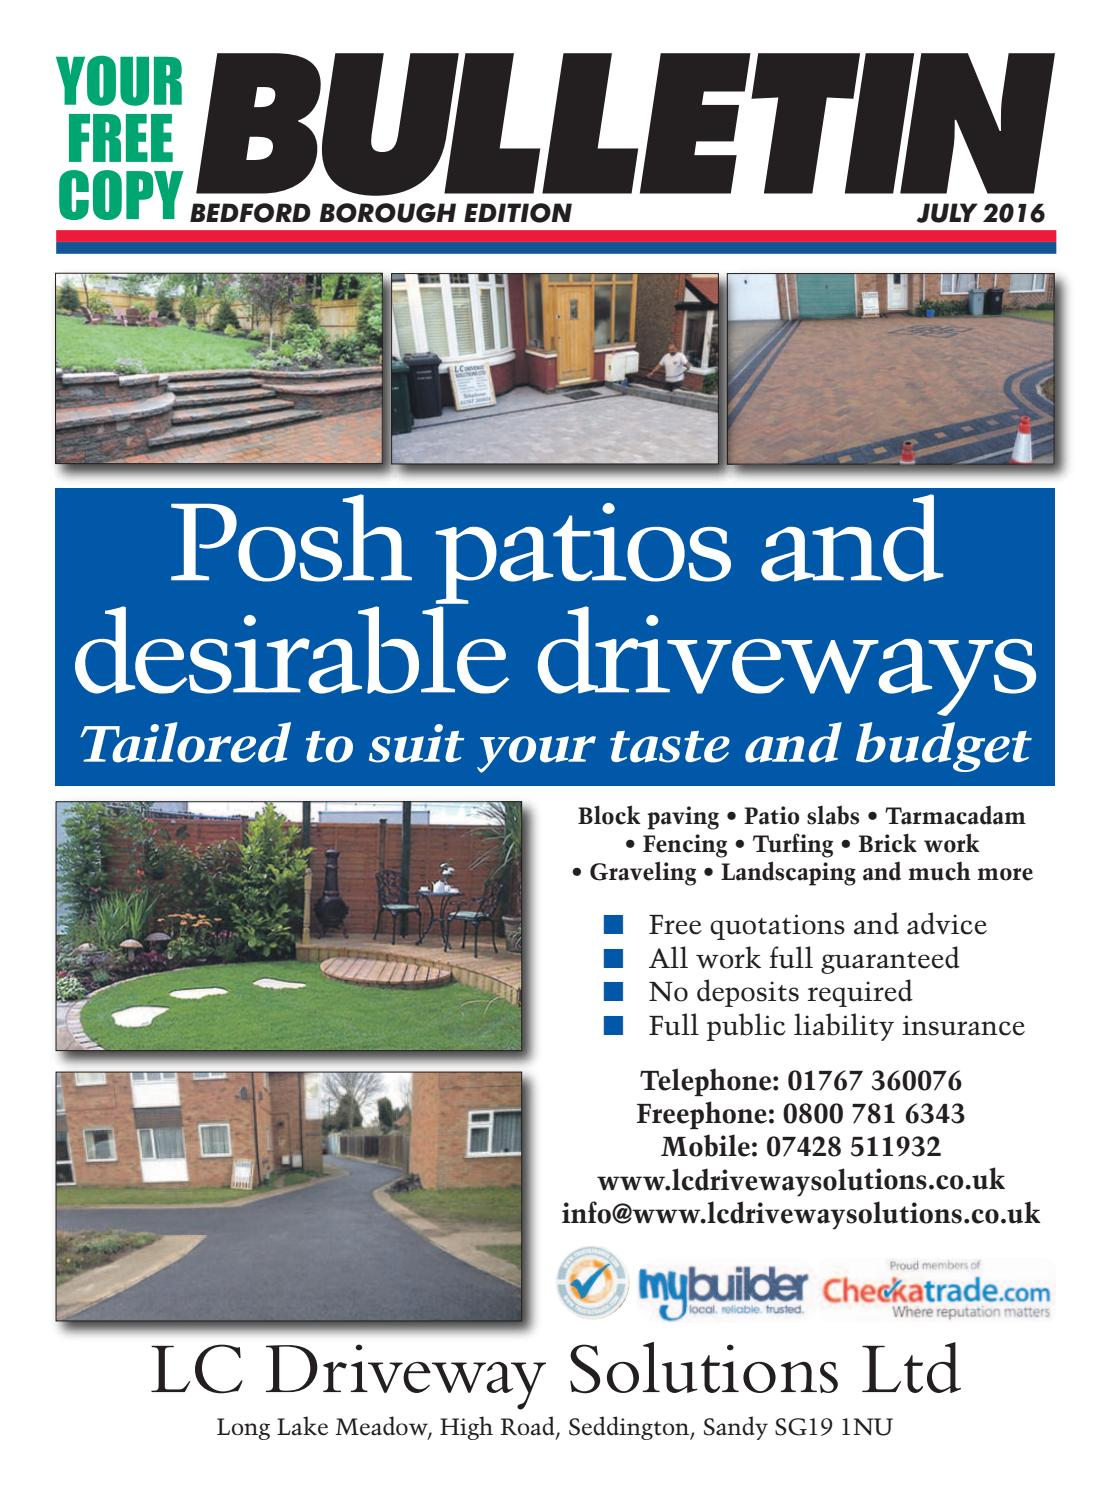 Bedford Bulletin June 2016 By Martin Quince   Issuu